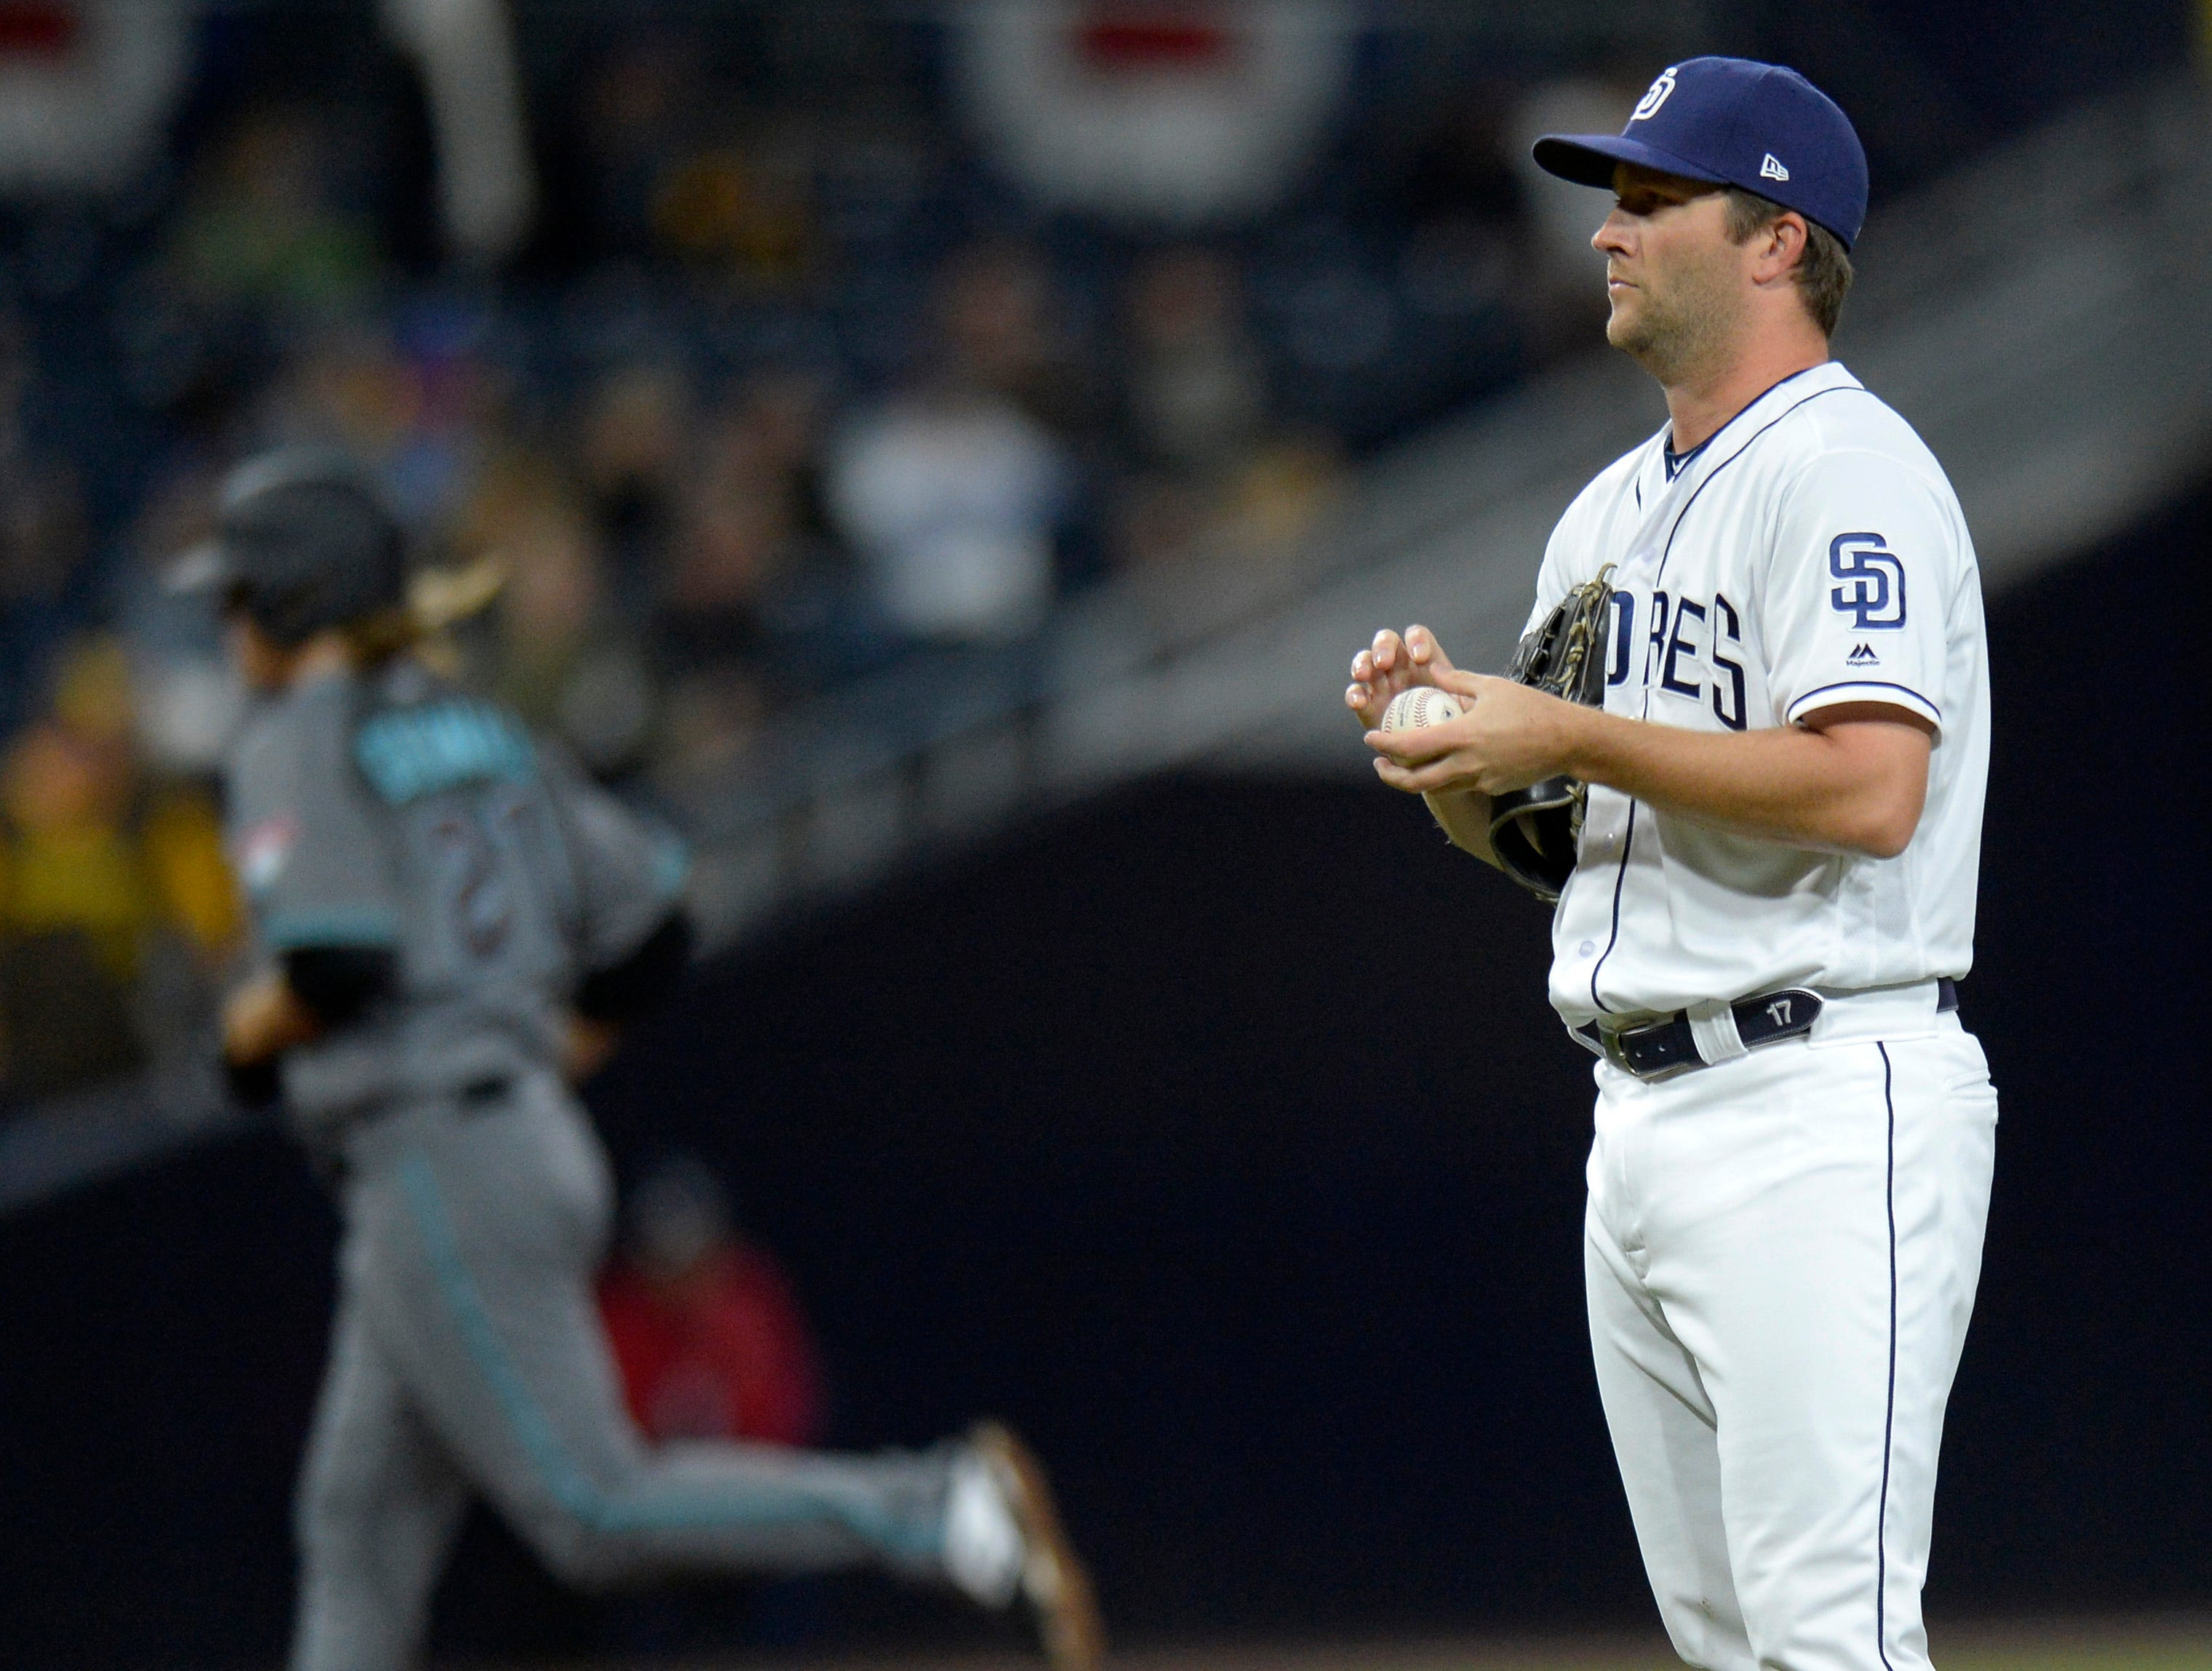 Apr 2, 2019; San Diego, CA, USA; San Diego Padres relief pitcher Adam Warren (17) reacts after giving up a solo home run to Arizona Diamondbacks starting pitcher Zack Greinke (background) during the sixth inning at Petco Park. Mandatory Credit: Jake Roth-USA TODAY Sports